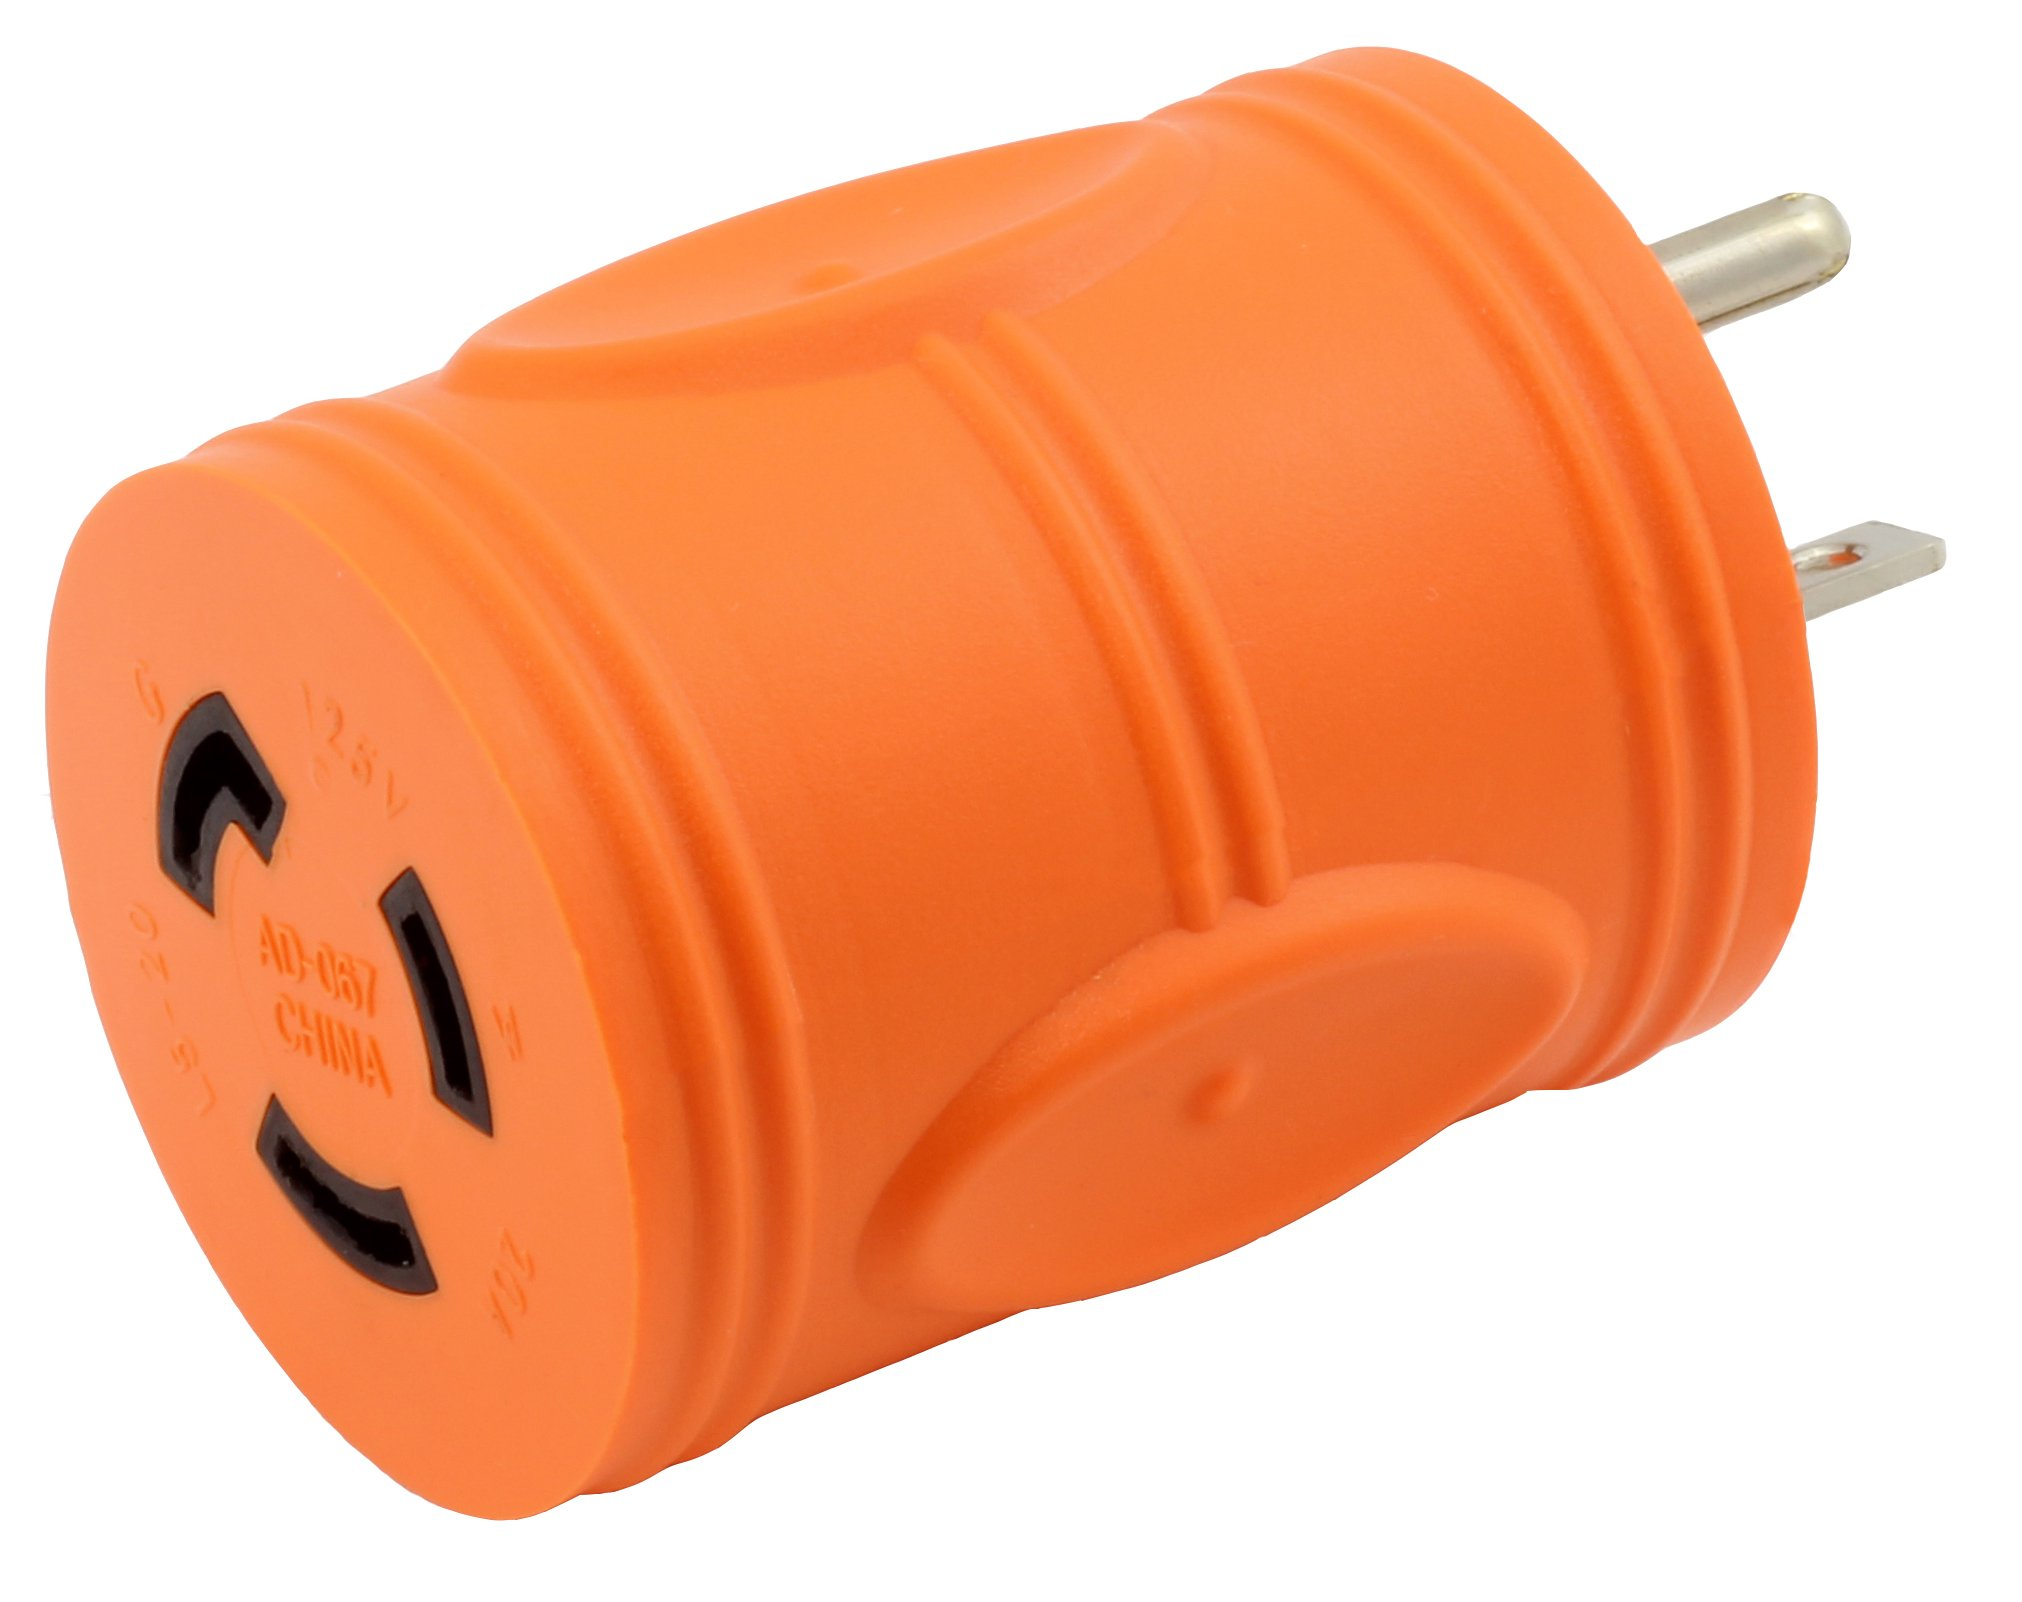 AC WORKS [AD520L520] Locking Adapter 5-20P 20Amp Househole Male Plug to Locking L5-20R Female Connectors Adapter